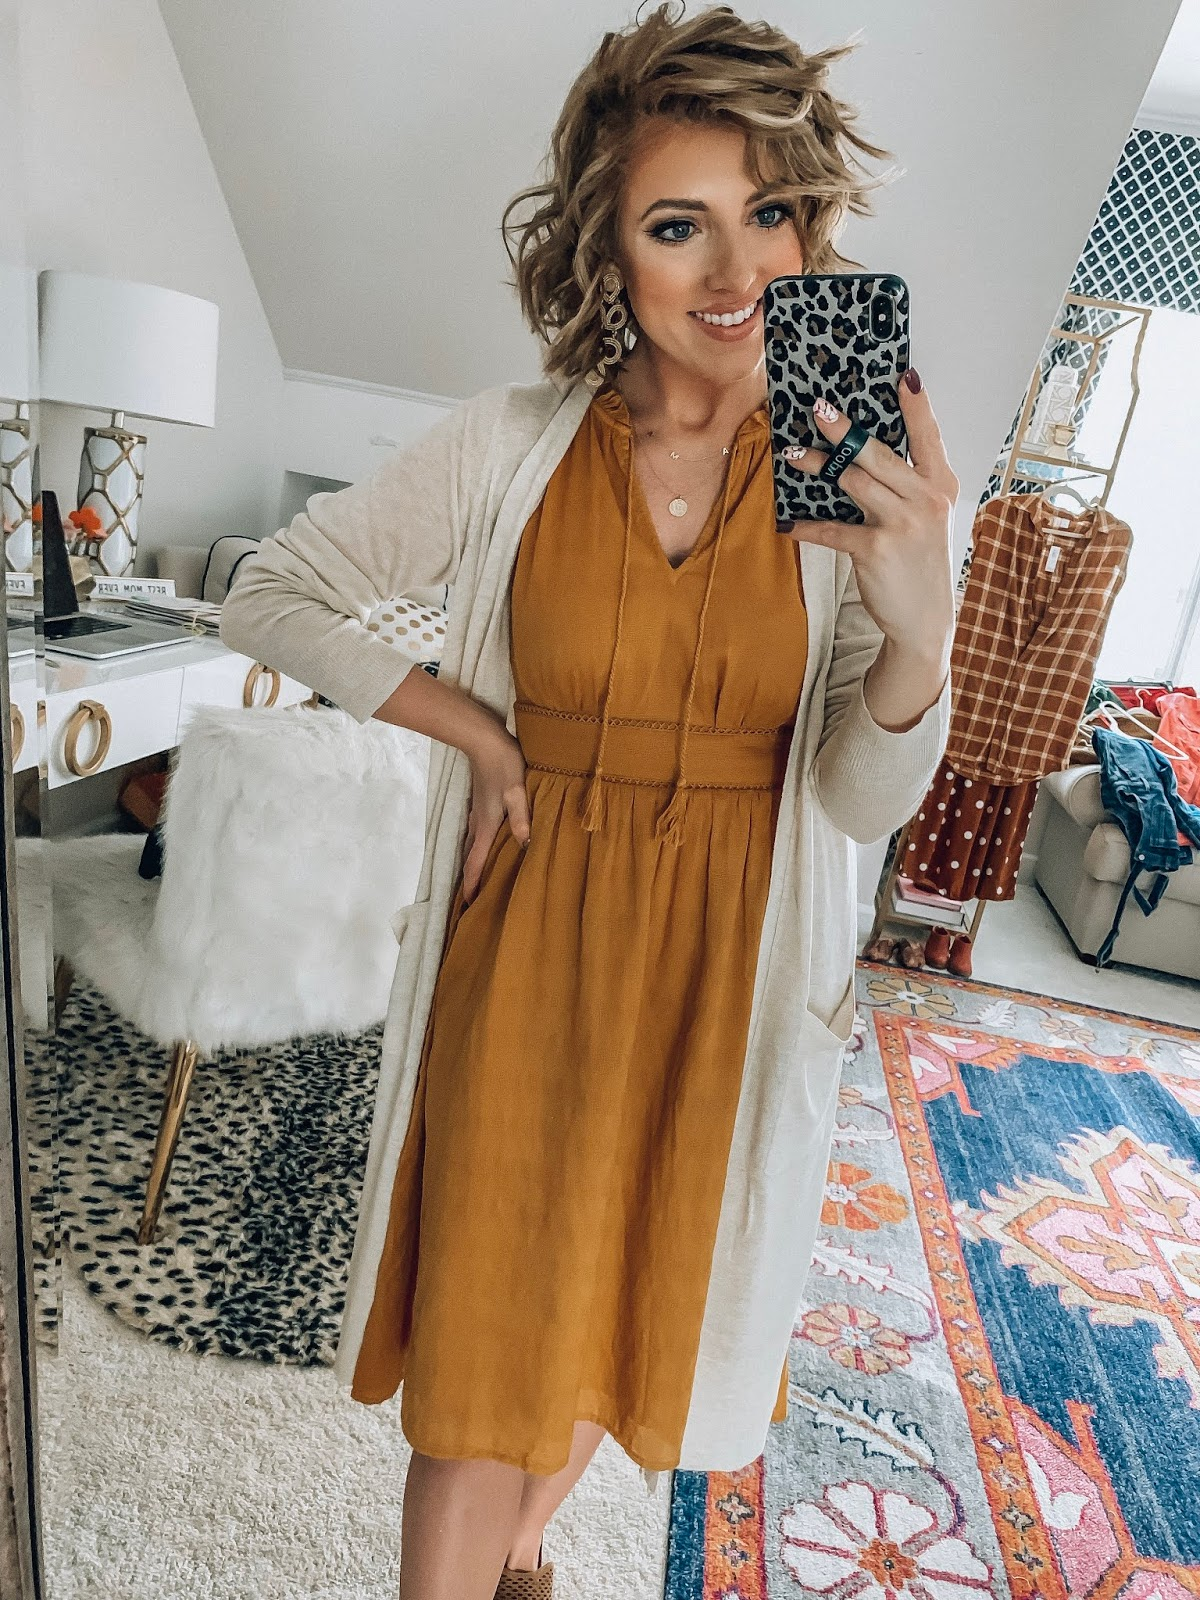 Old Navy Midi dress + Target Style Cardigan - Something Delightful Blog #affordablefashion